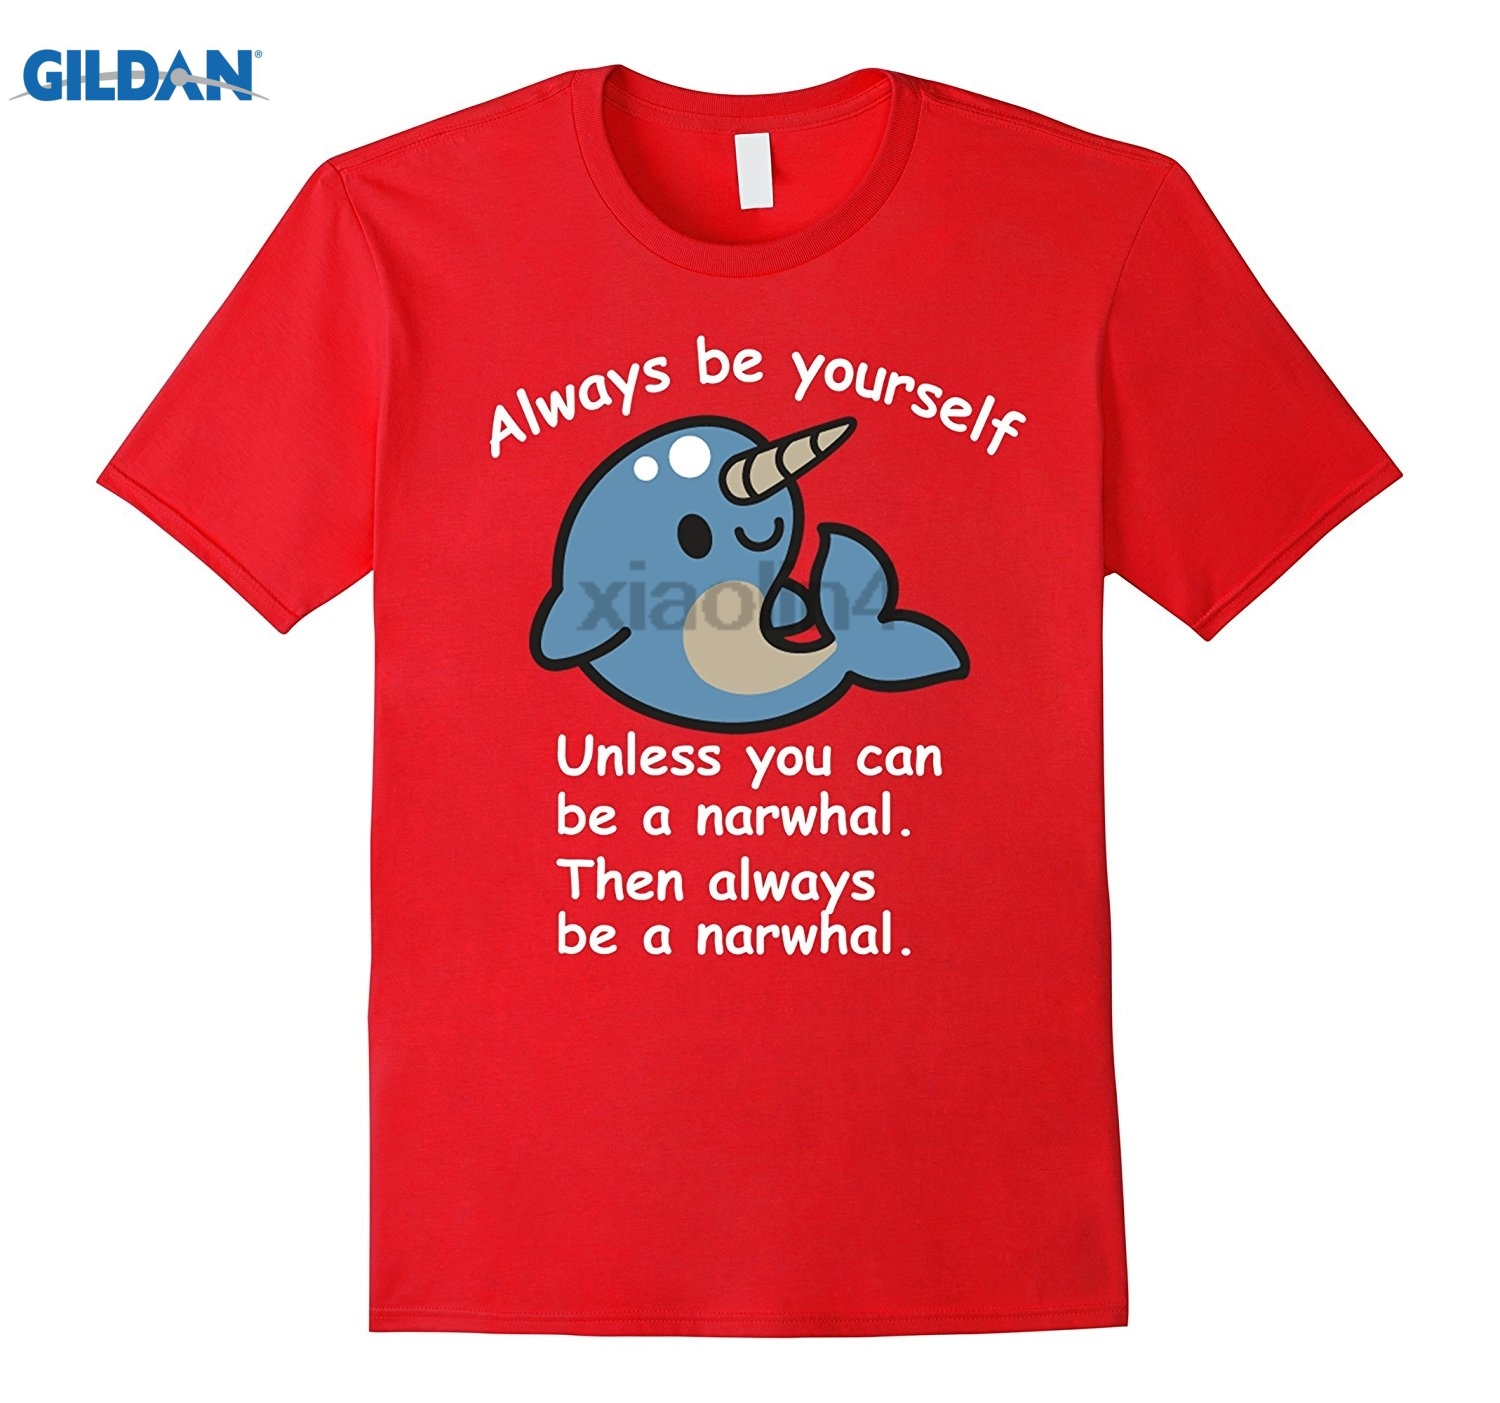 GILDAN The Always Be A Narwhal Funny Narwhal T-shirt Mens 2018 Brand Clothing 100% Cotton Casual T-shirt dress T-shirt